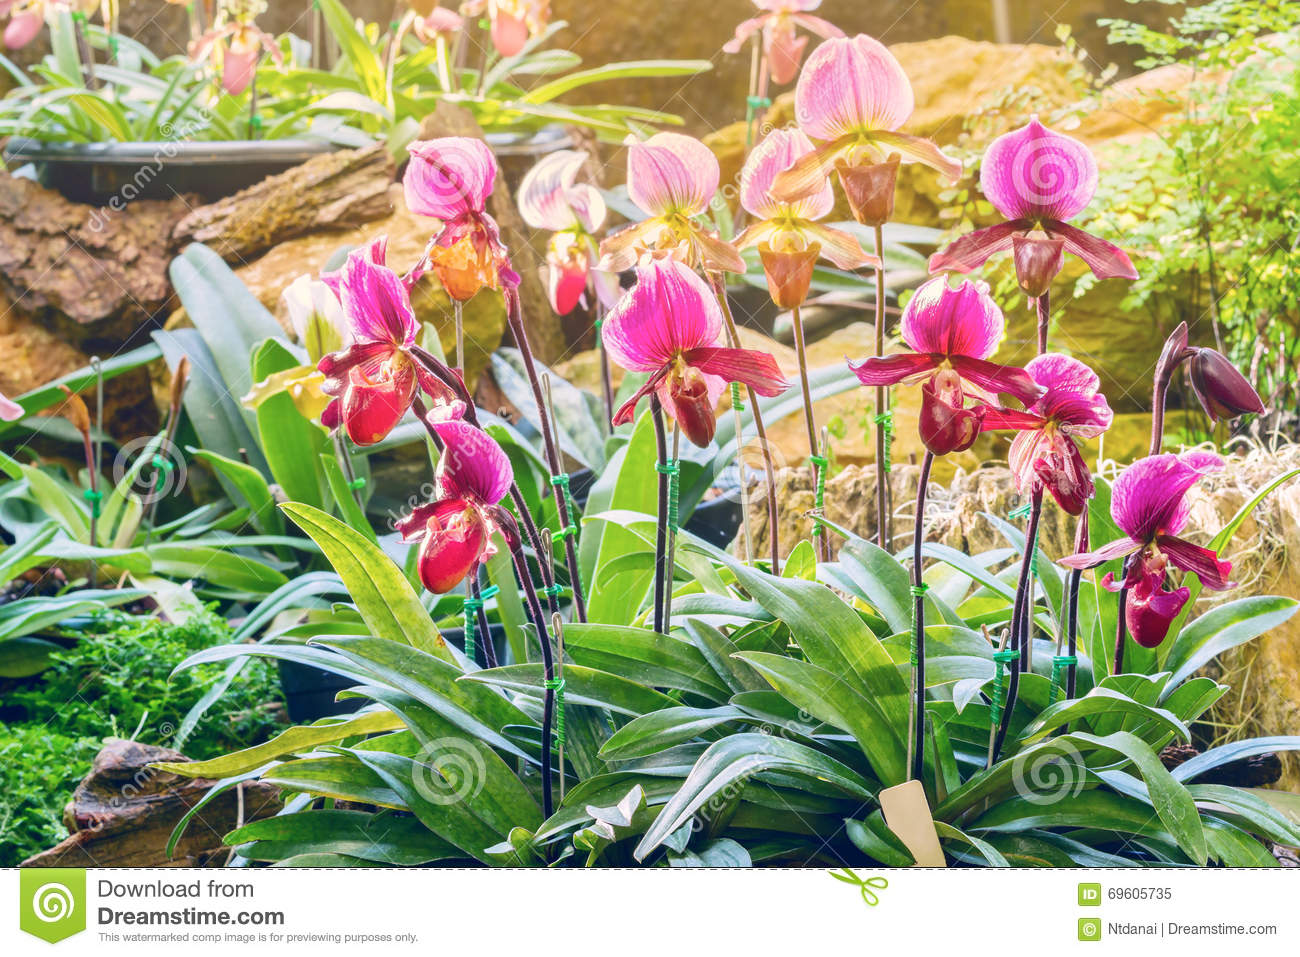 Gardening Group: Lady Slipper Orchid Stock Image. Image Of Ornamental